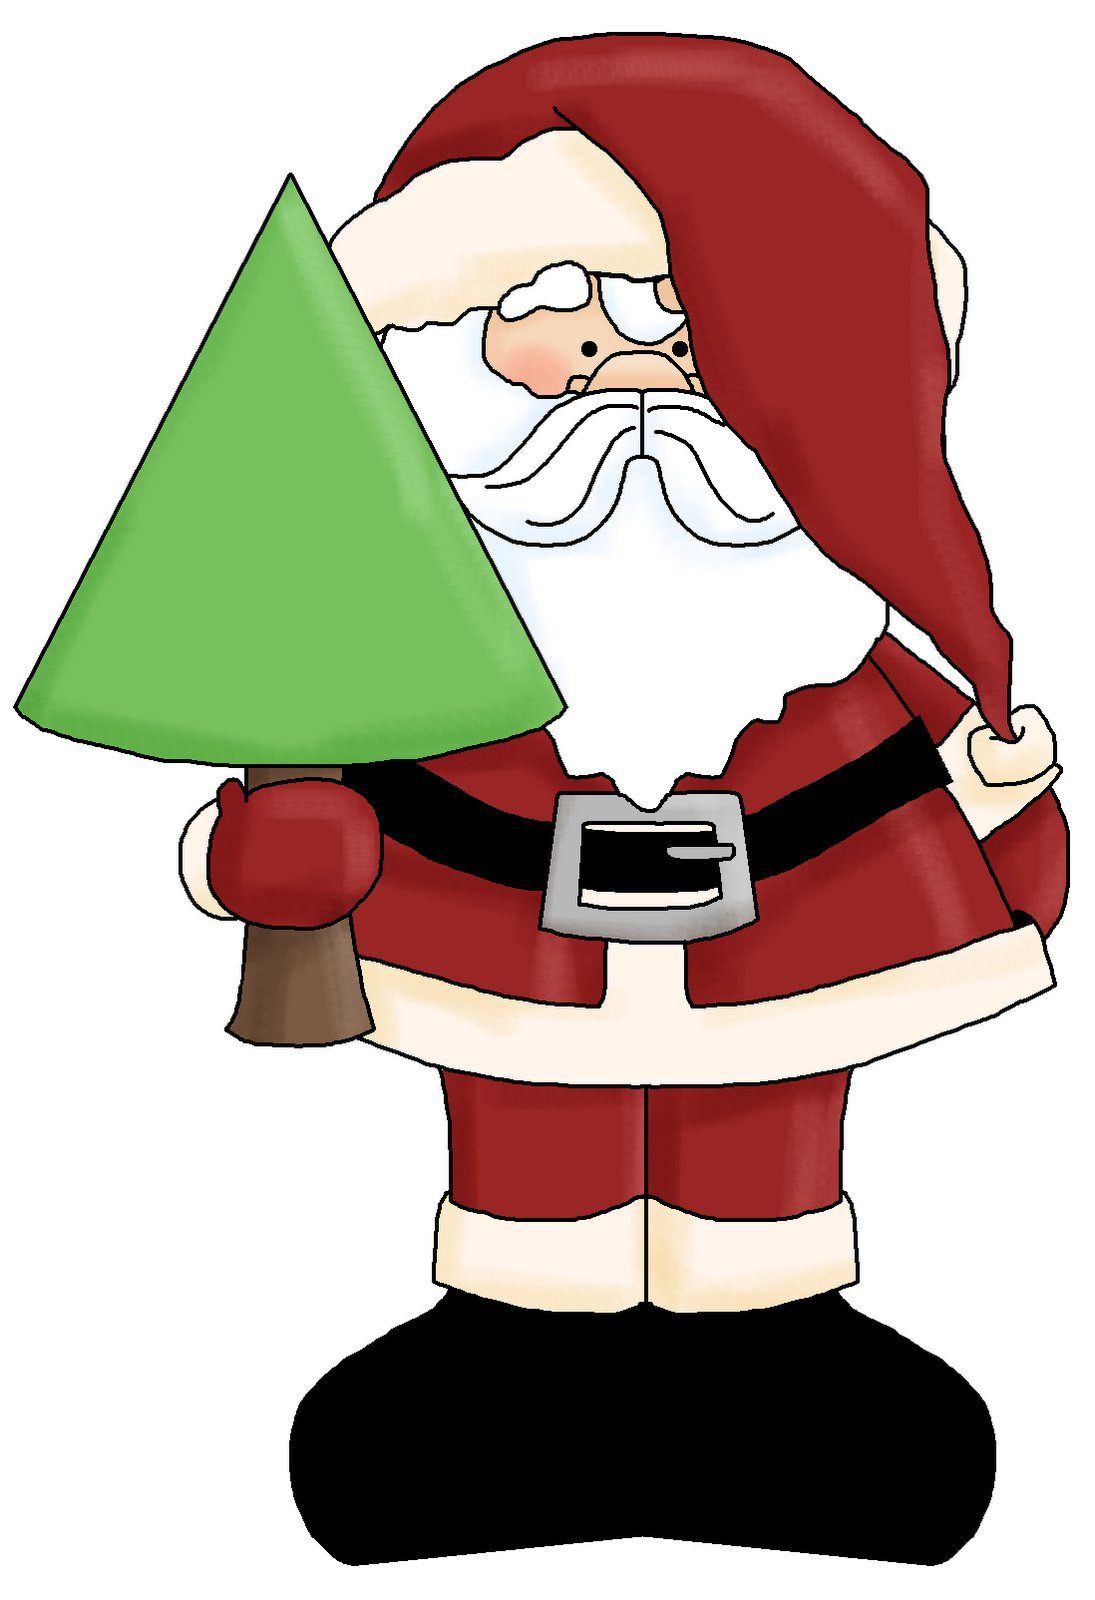 Eraser clipart classroom item. Christmas gift ideas for